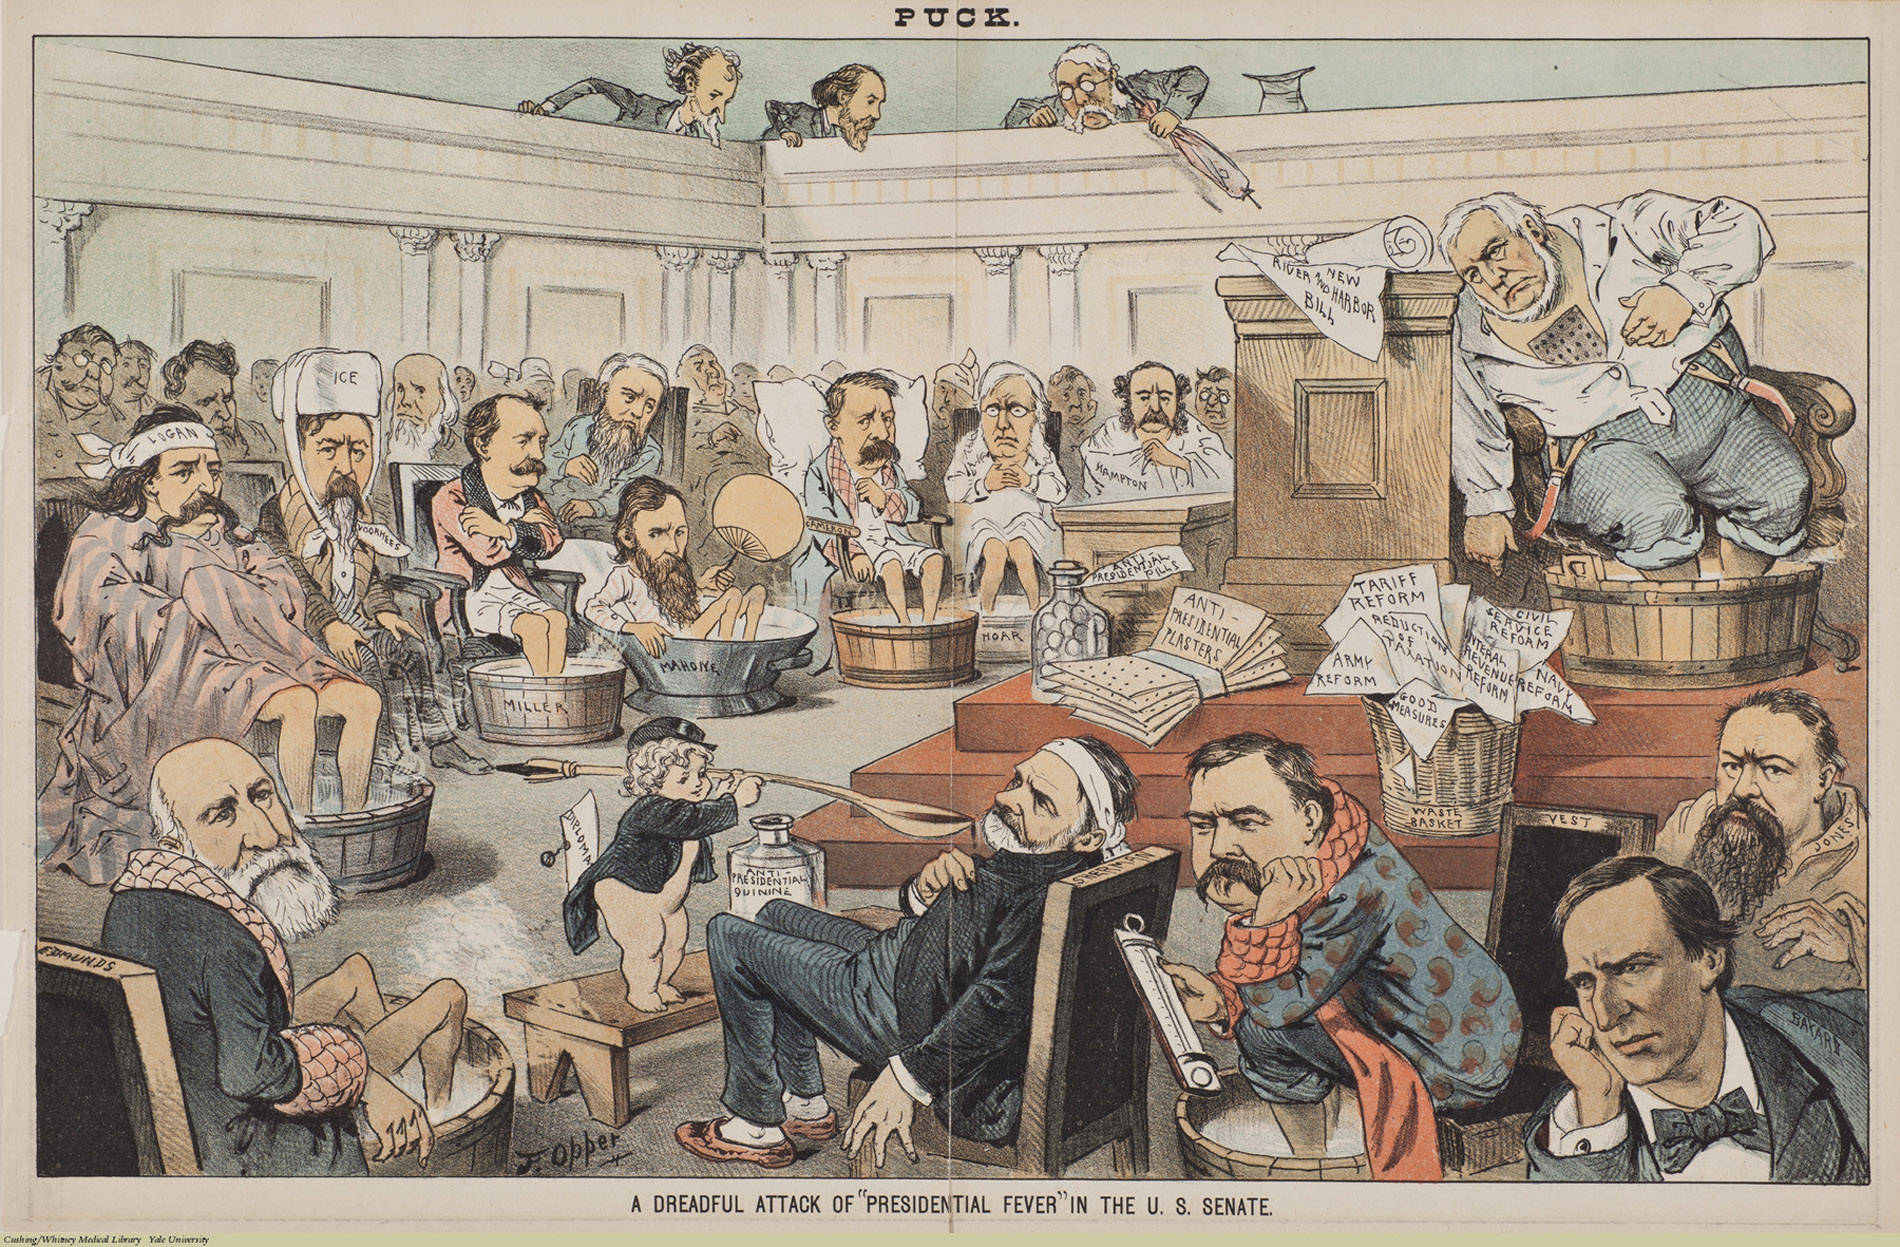 "A Dreadful Attack Of ""Presidential Fever"" In The U.S. Senate.  Frederick Burr Opper, Chromolithograph, 1883. Subject: U.S. Politics, Infectious Disease, Quinine, Foot Baths. For a full list of the Senators, see here."